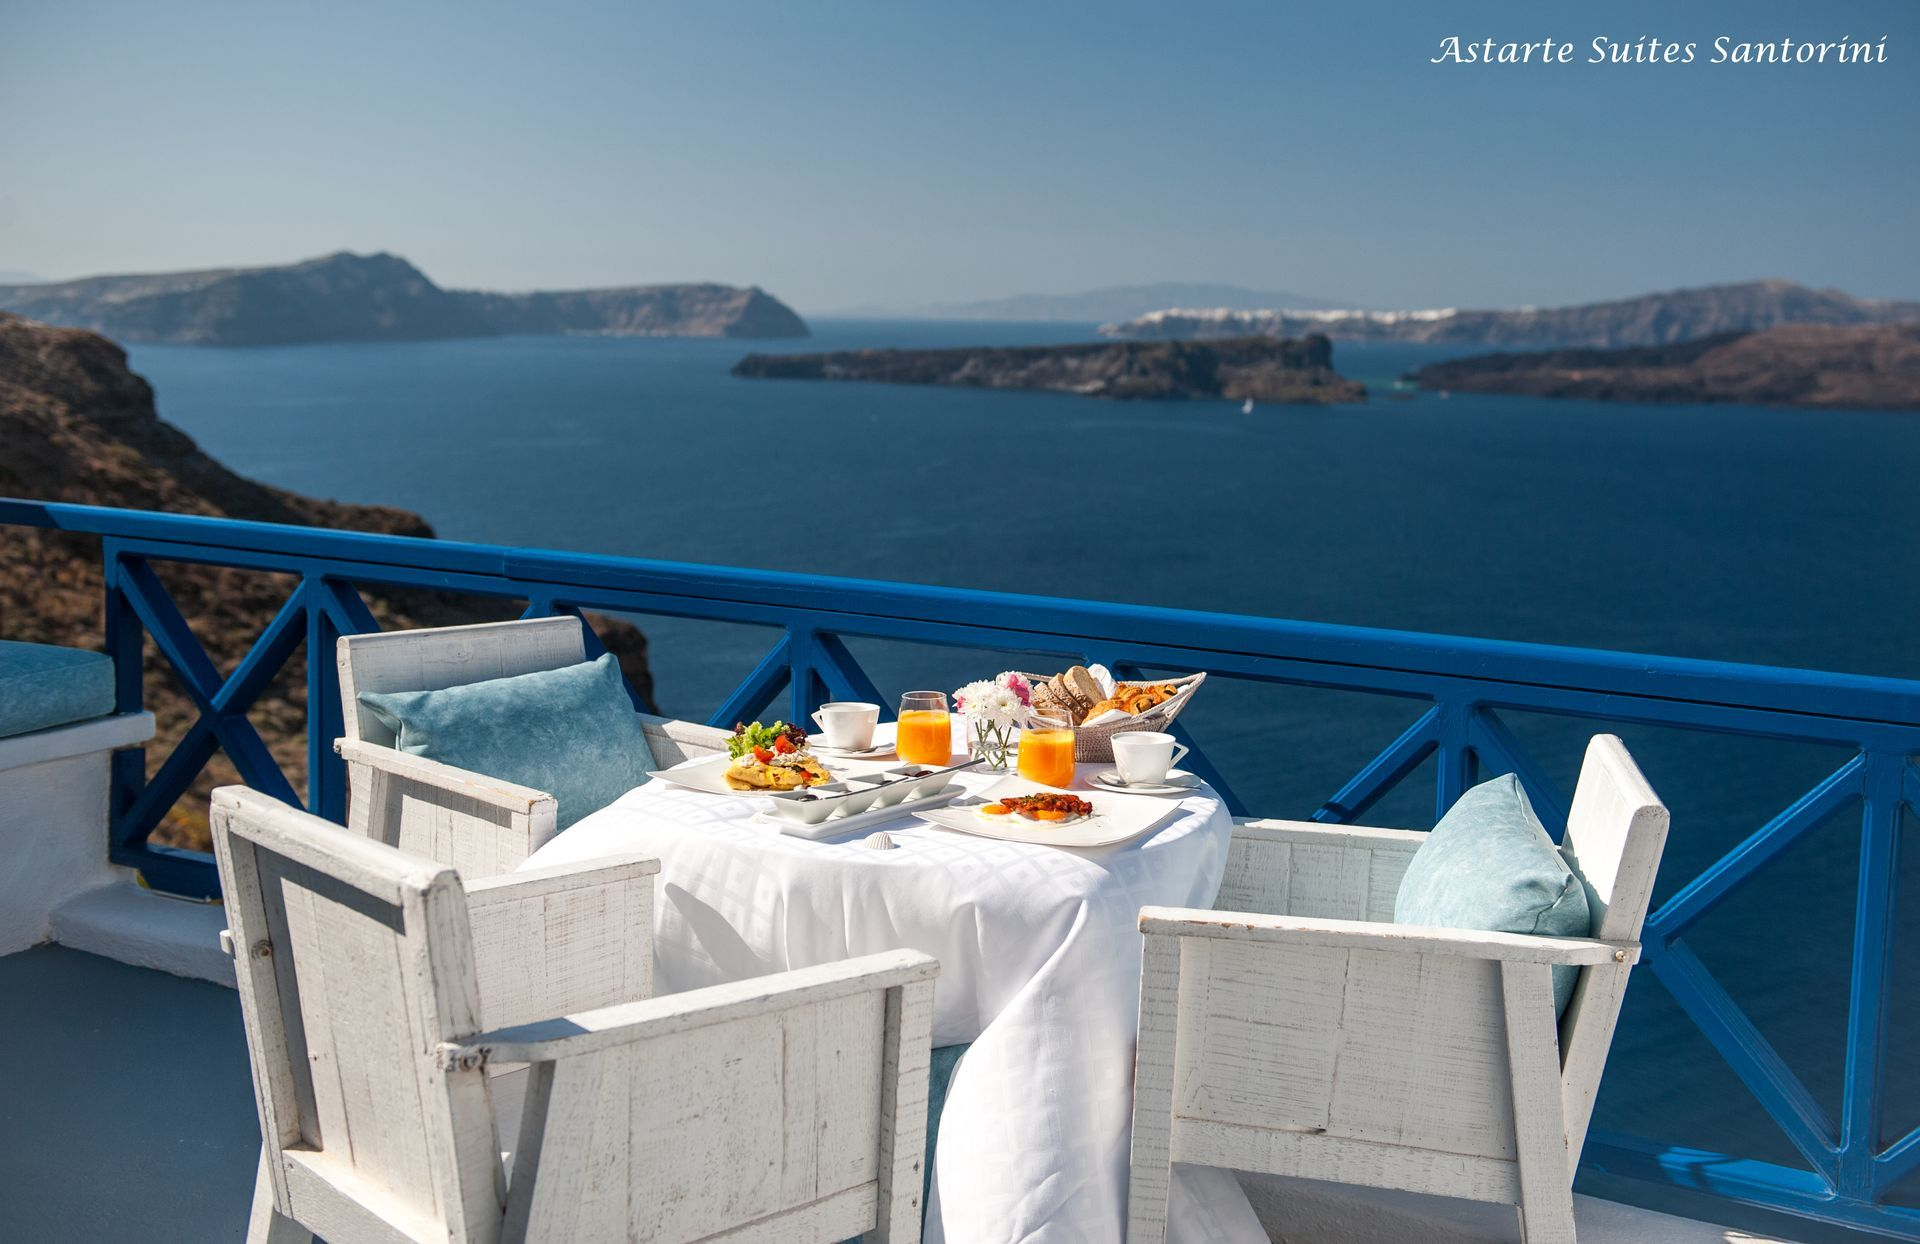 Astarte_Suites_in_Santorini_breakfast_2_2